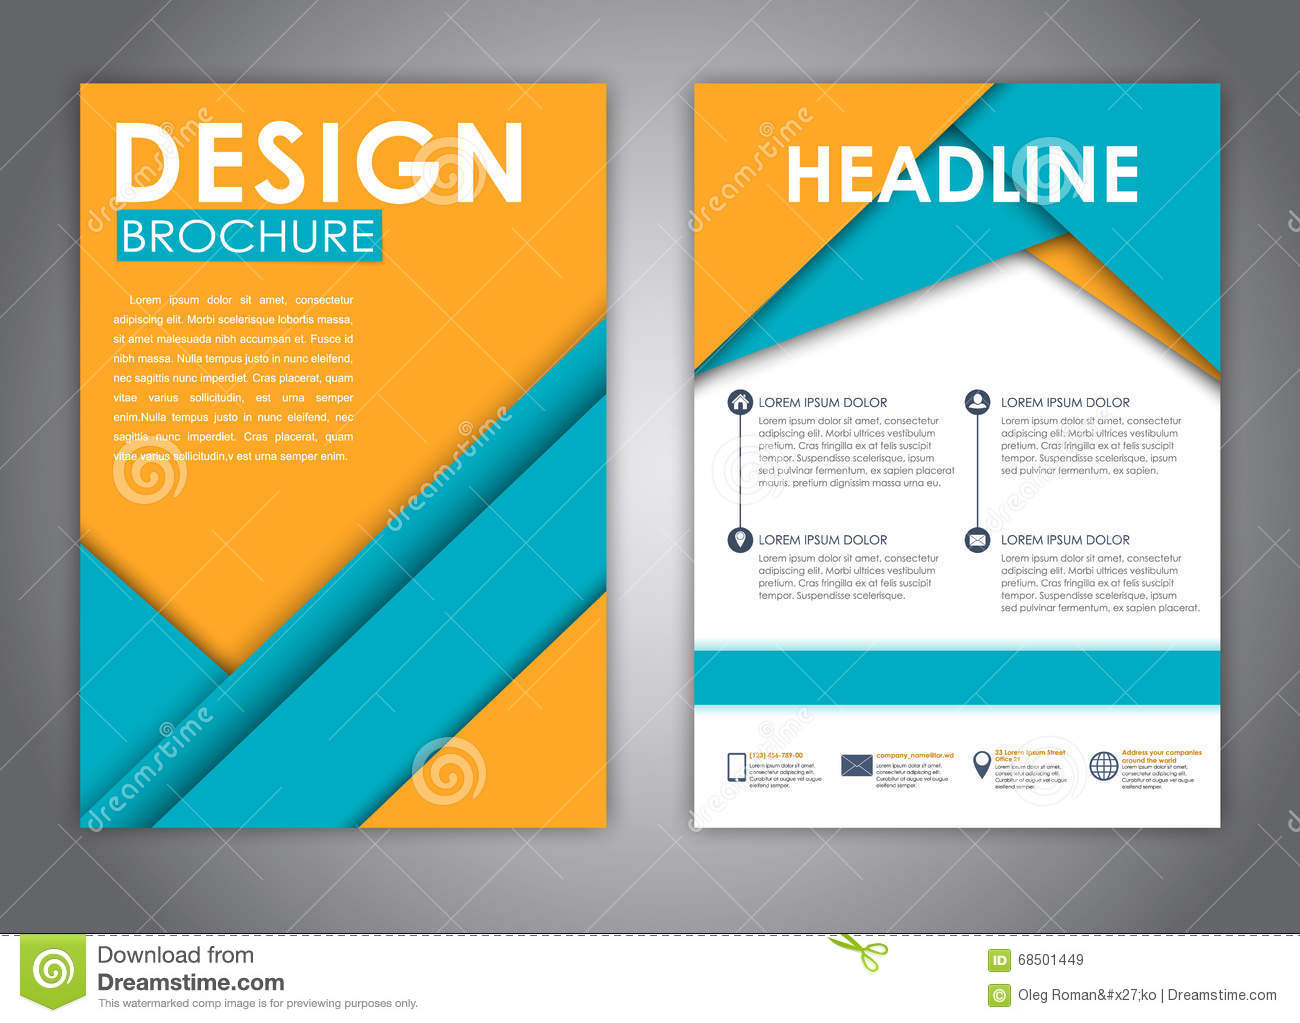 Brochures In The Style Of The Material Design Stock Vector - Image ...